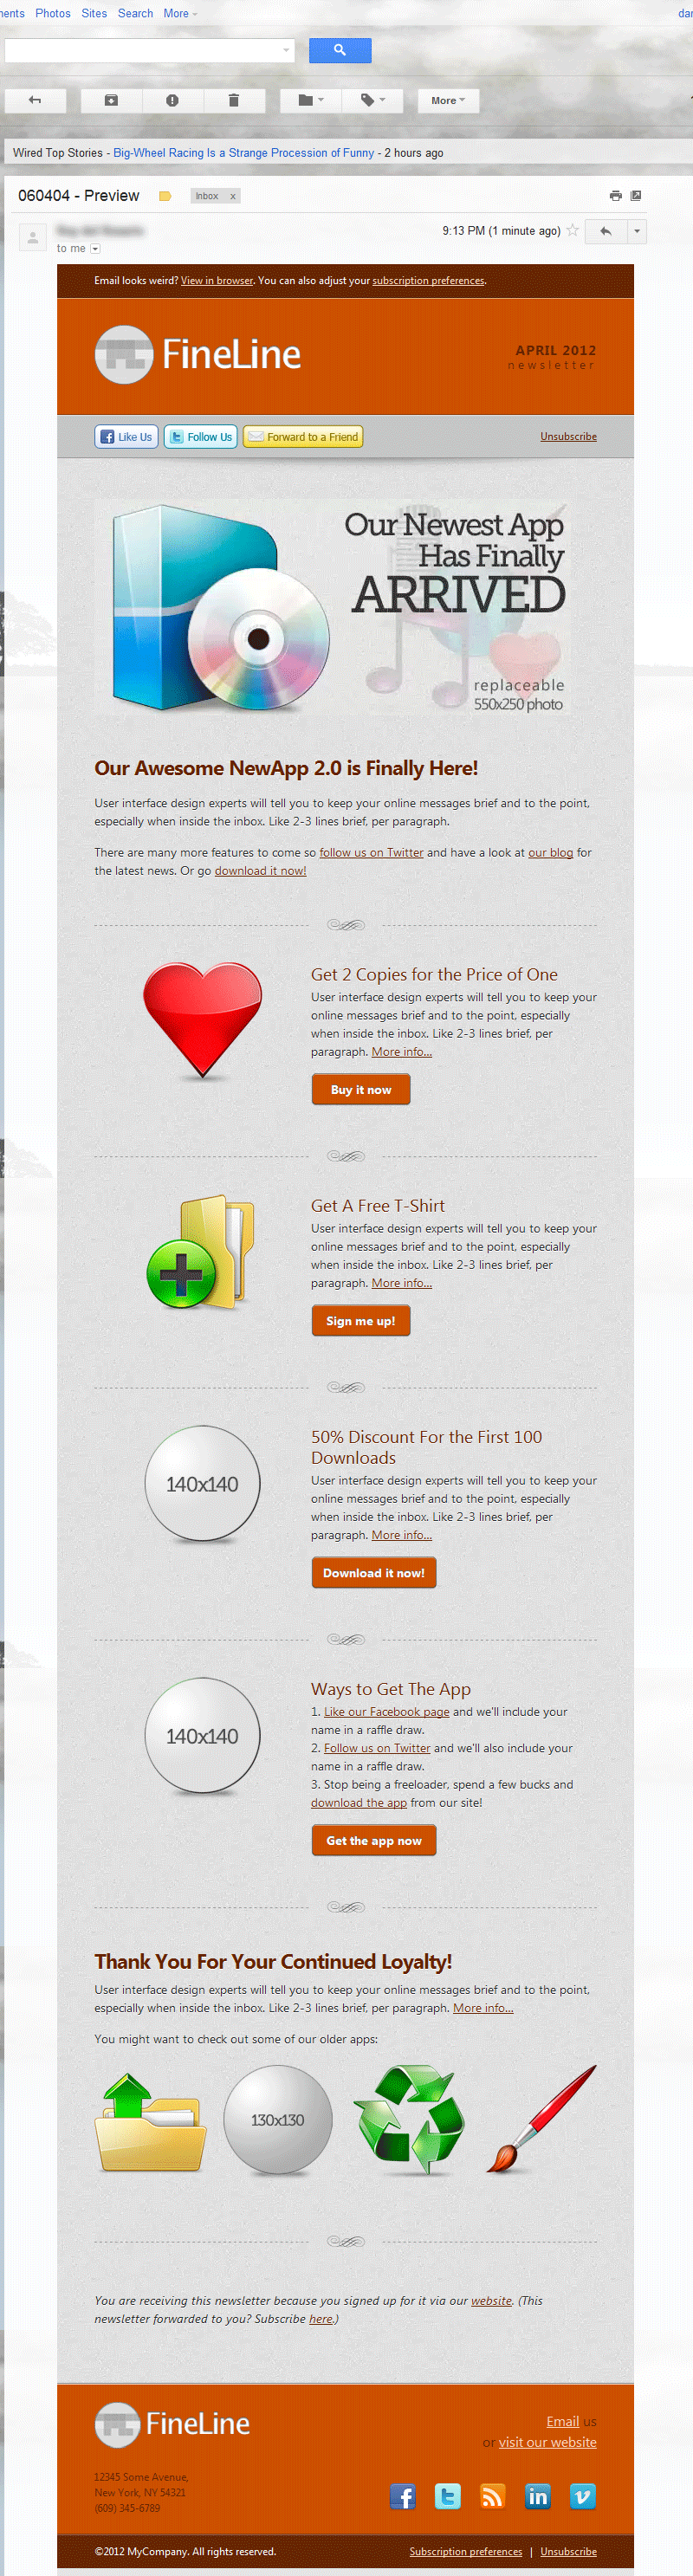 FineLine - Email Template - 30 Layouts 8 Colors - Screenshot in Gmail, as viewed using Opera 11.62.